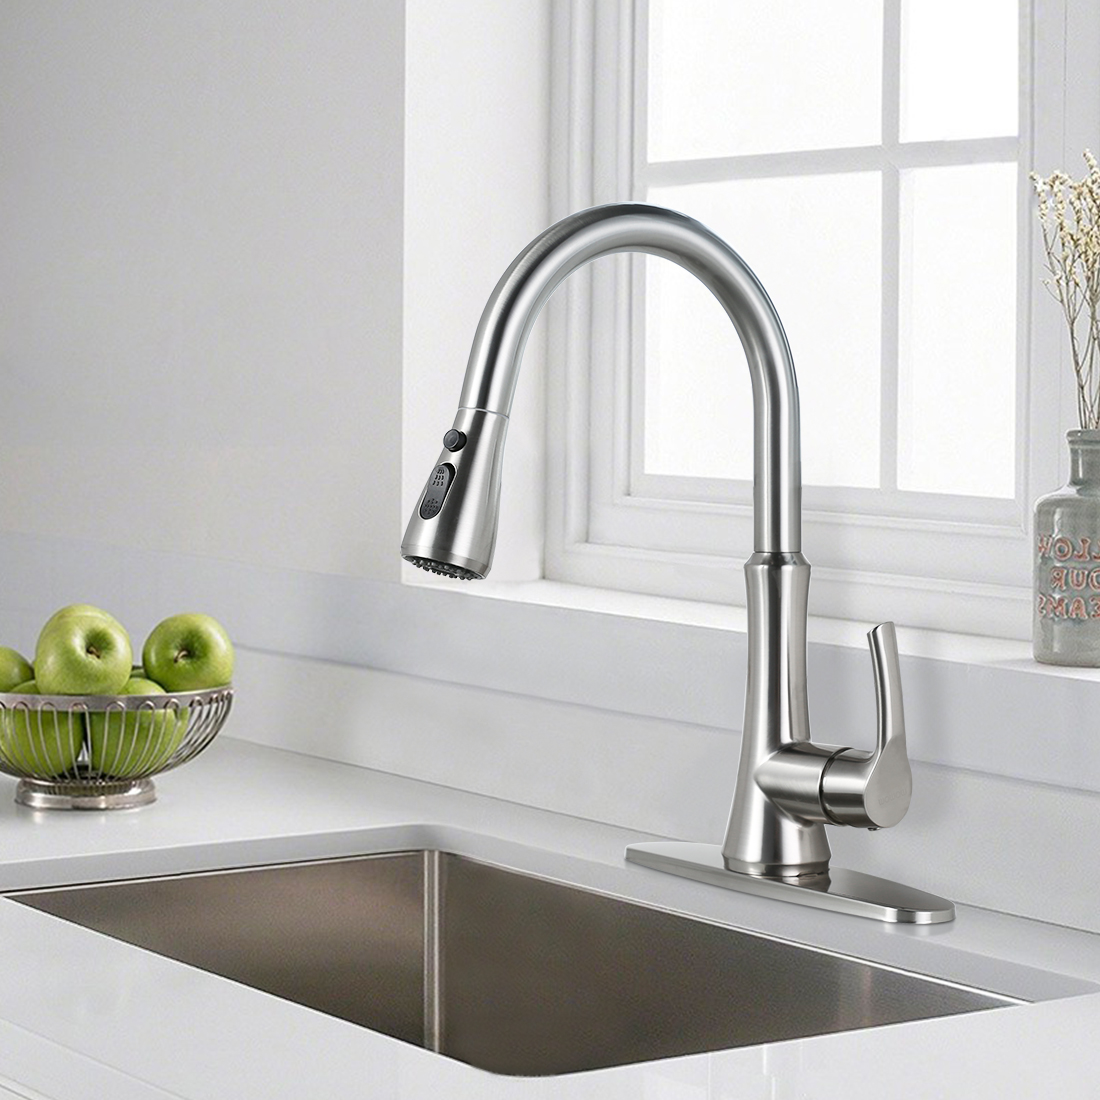 modern rv kitchen faucet with pull down sprayer brushed nickel